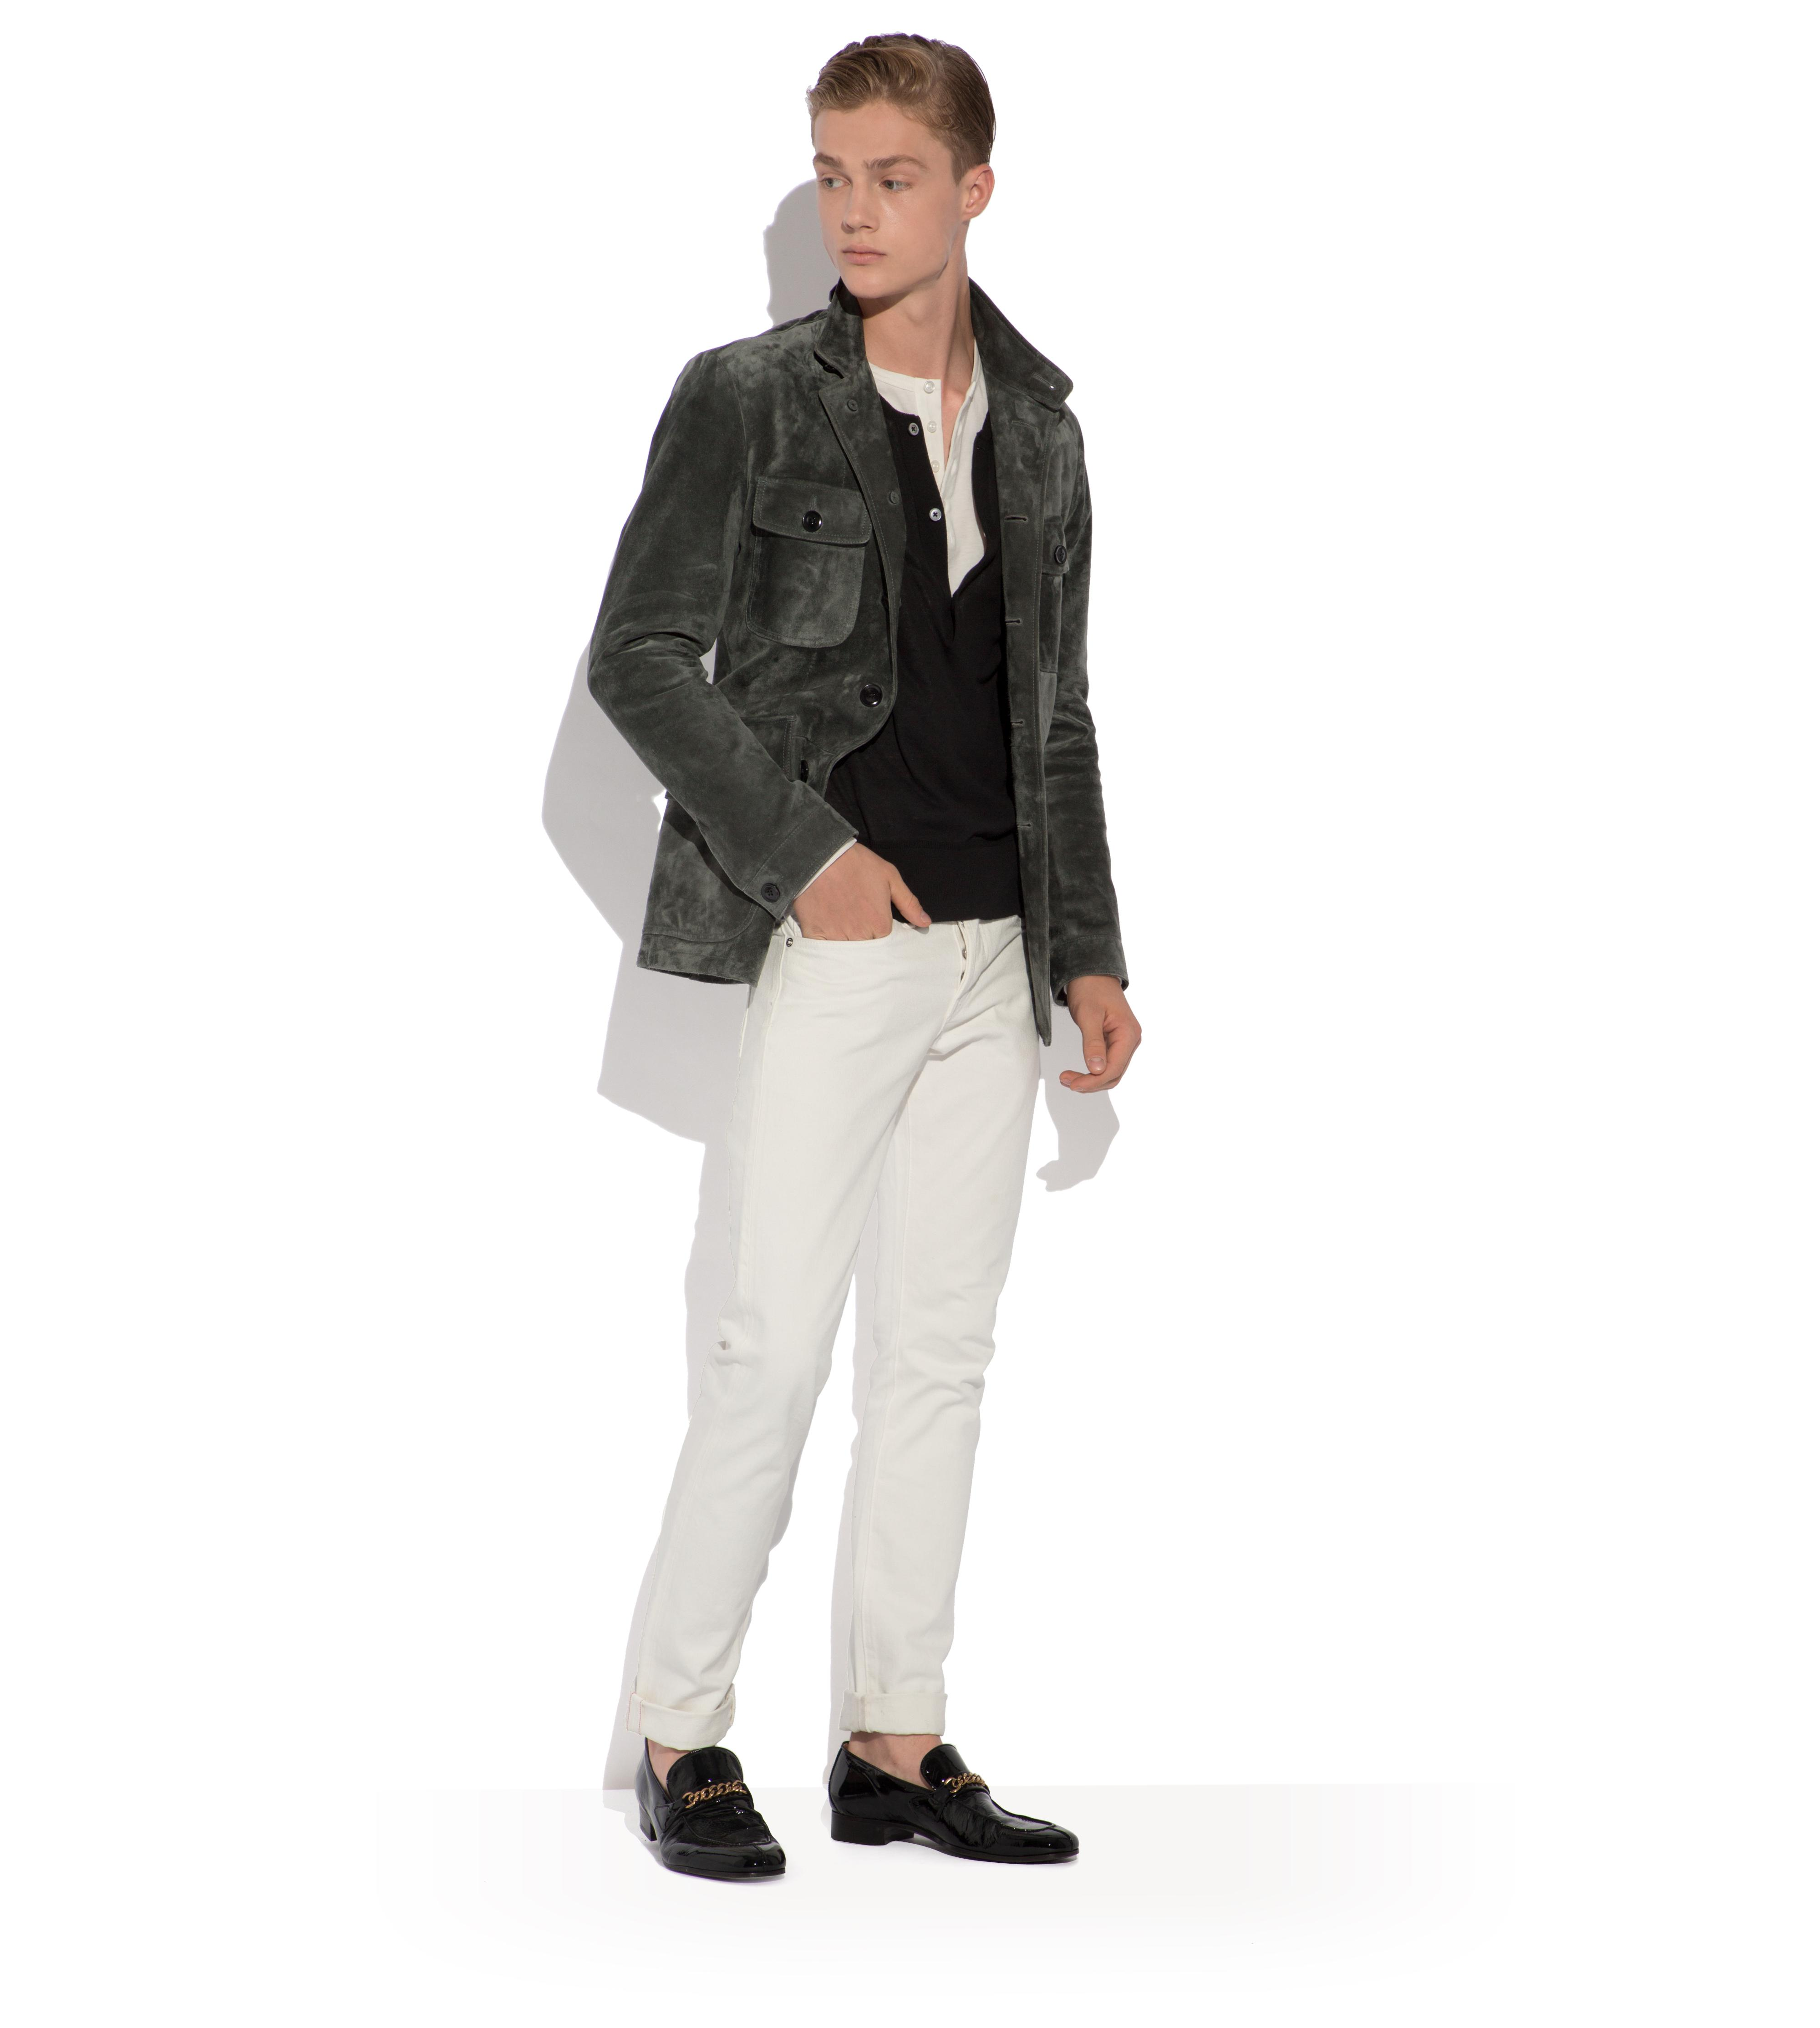 ICON SUEDE MILITARY JACKET B thumbnail